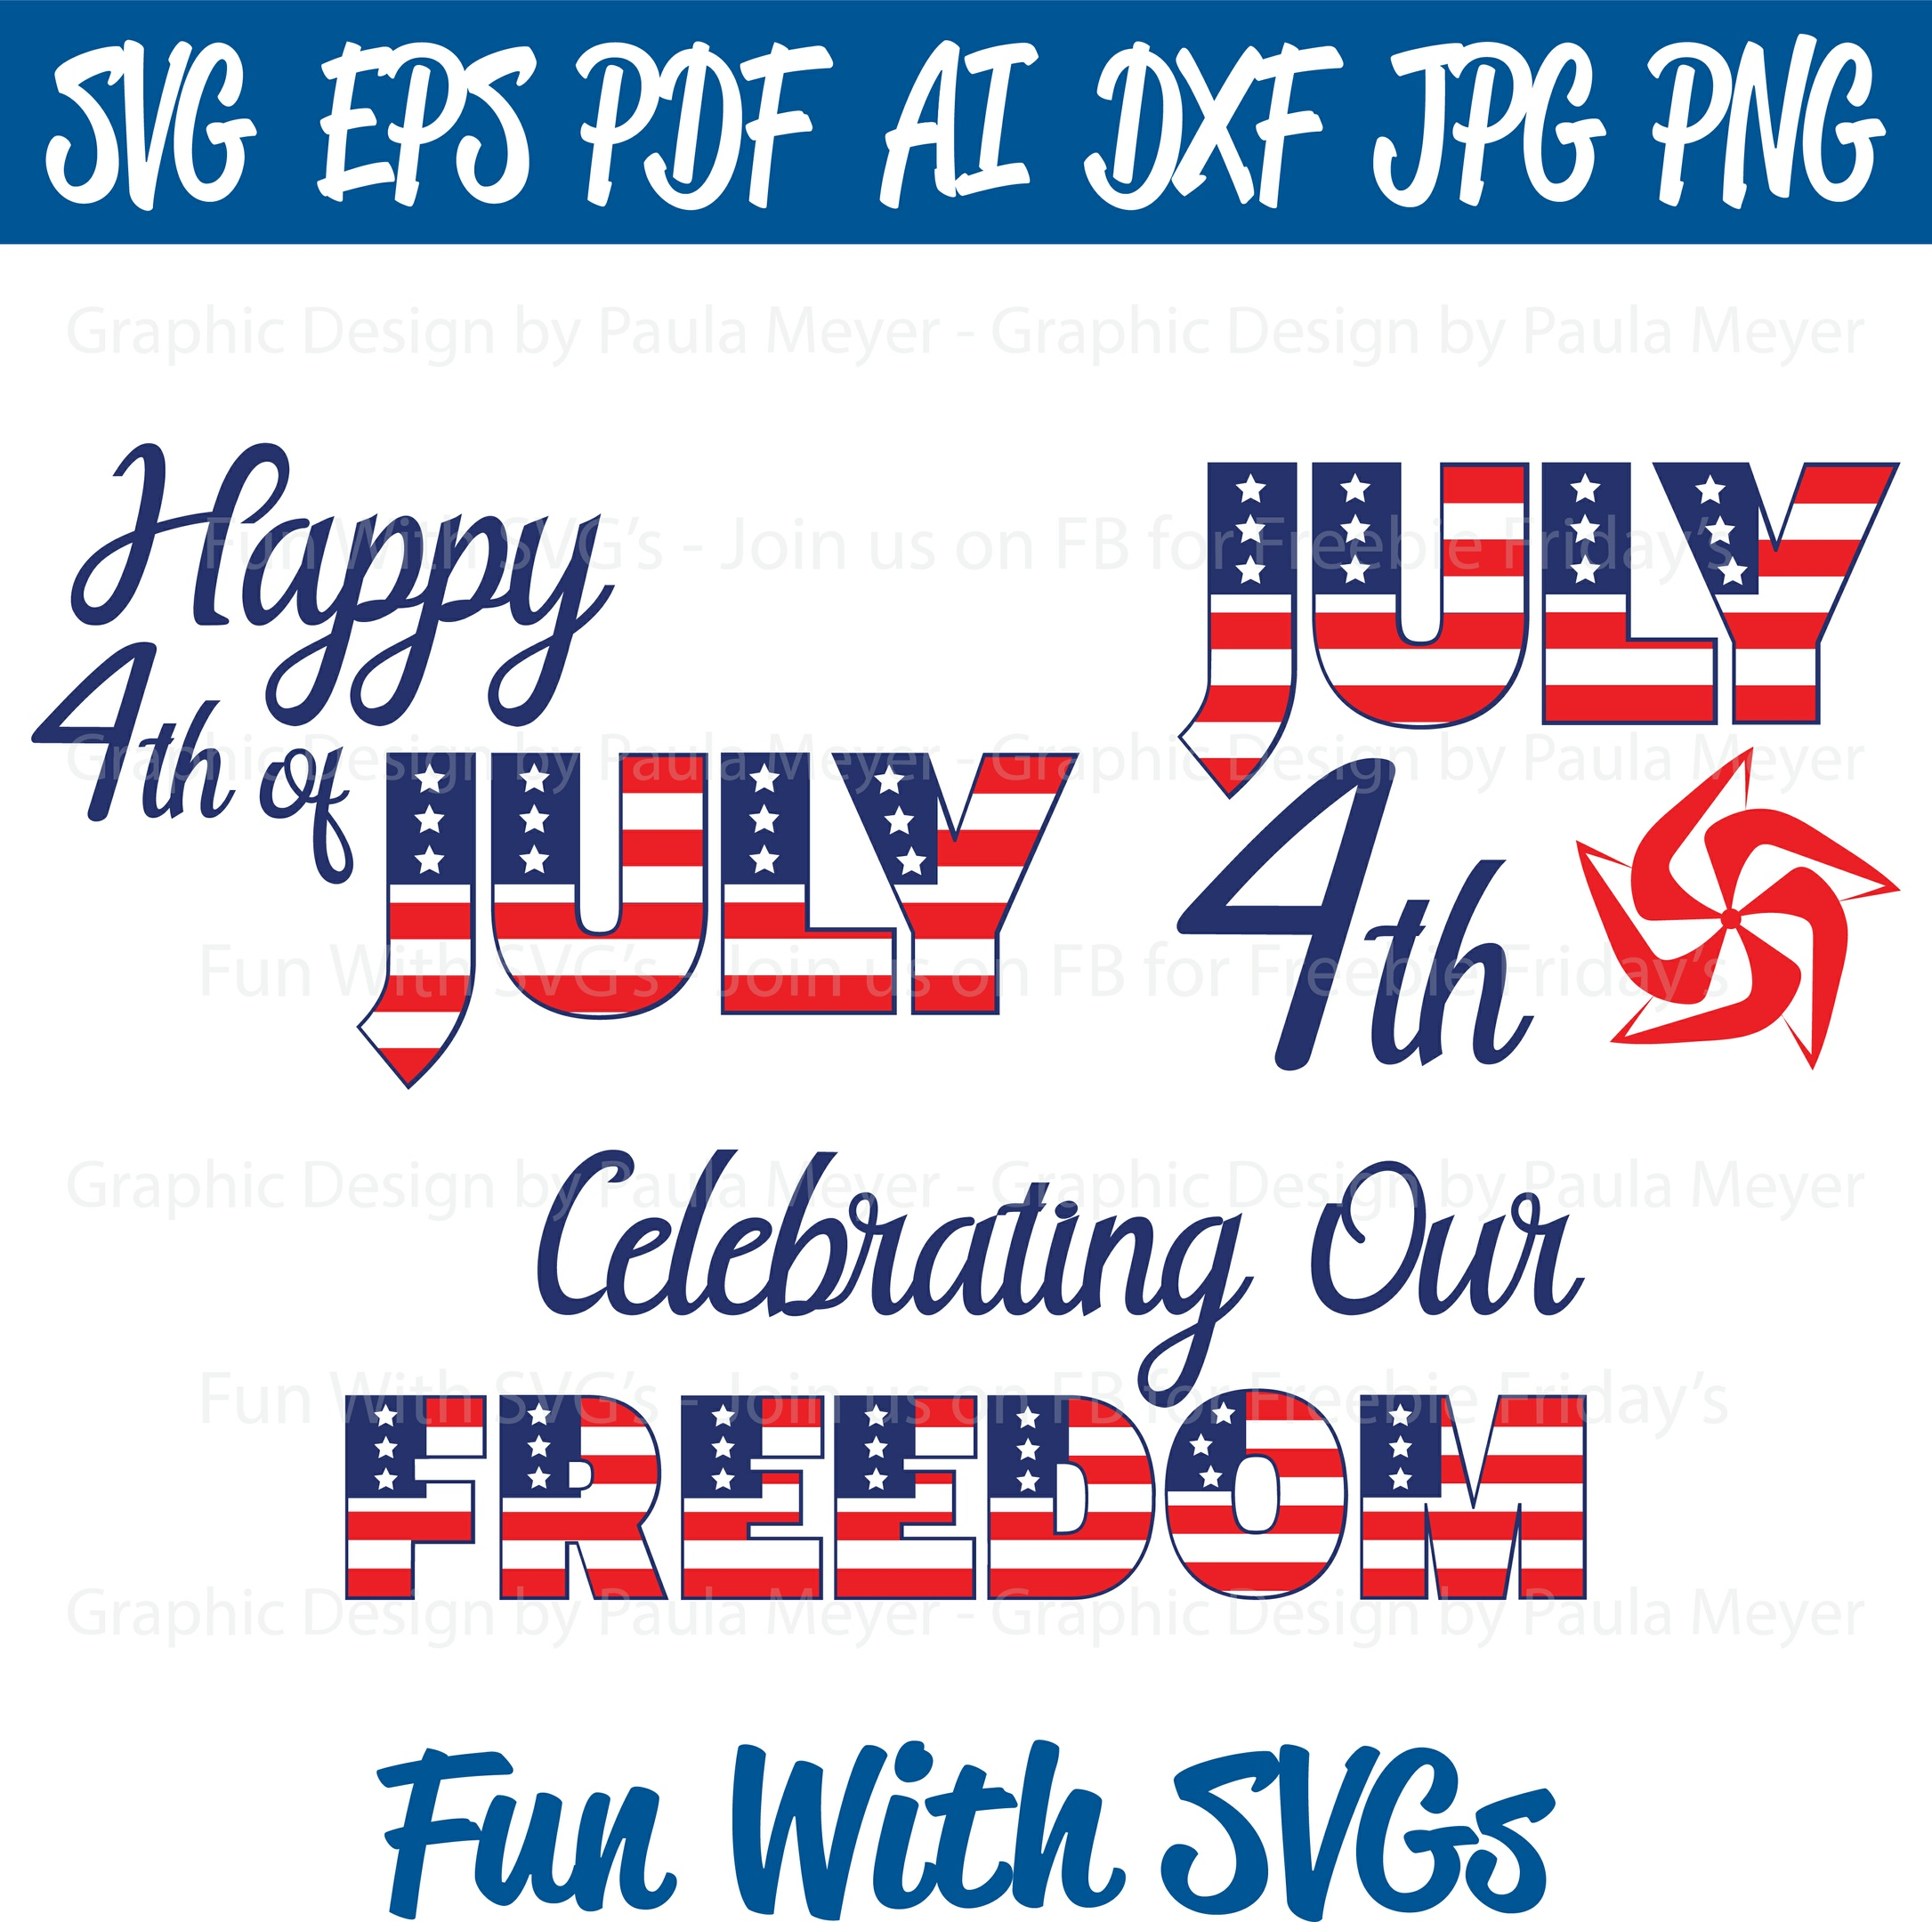 Happy 4th of July, Independence Day - SVG, High Res. Printable Graphics and Editable Vector Art